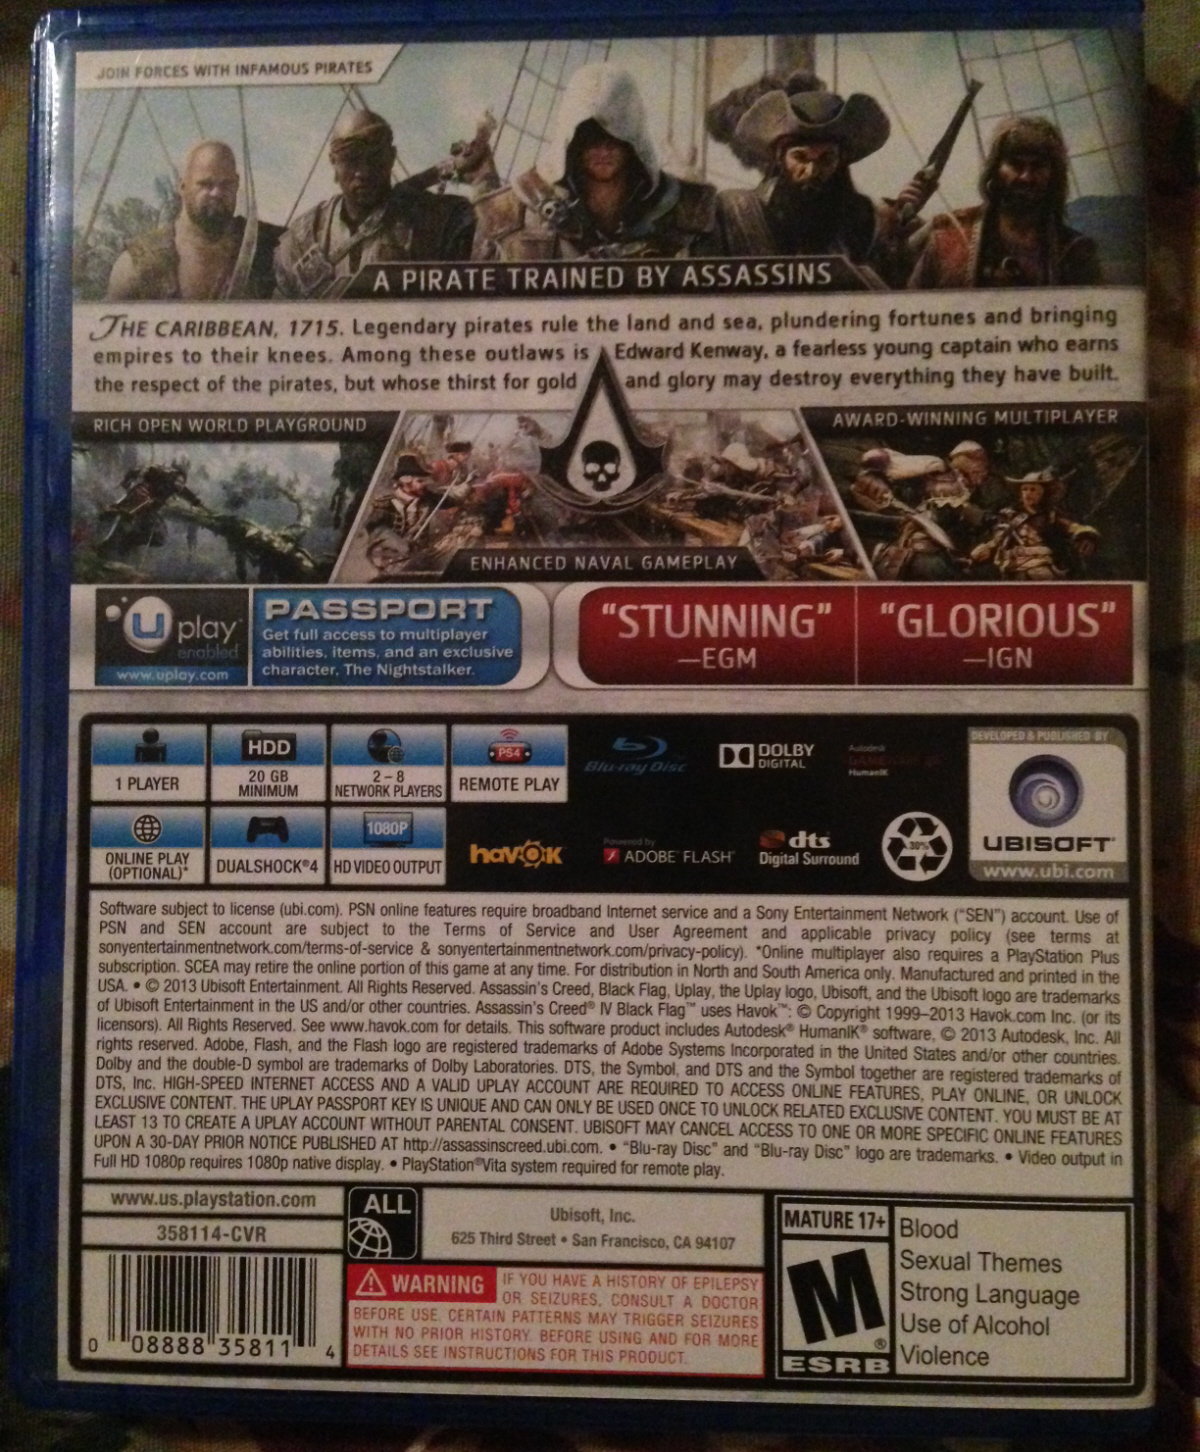 Ps4 Install Sizes For Battlefield 4 Assassin S Creed Iv Black